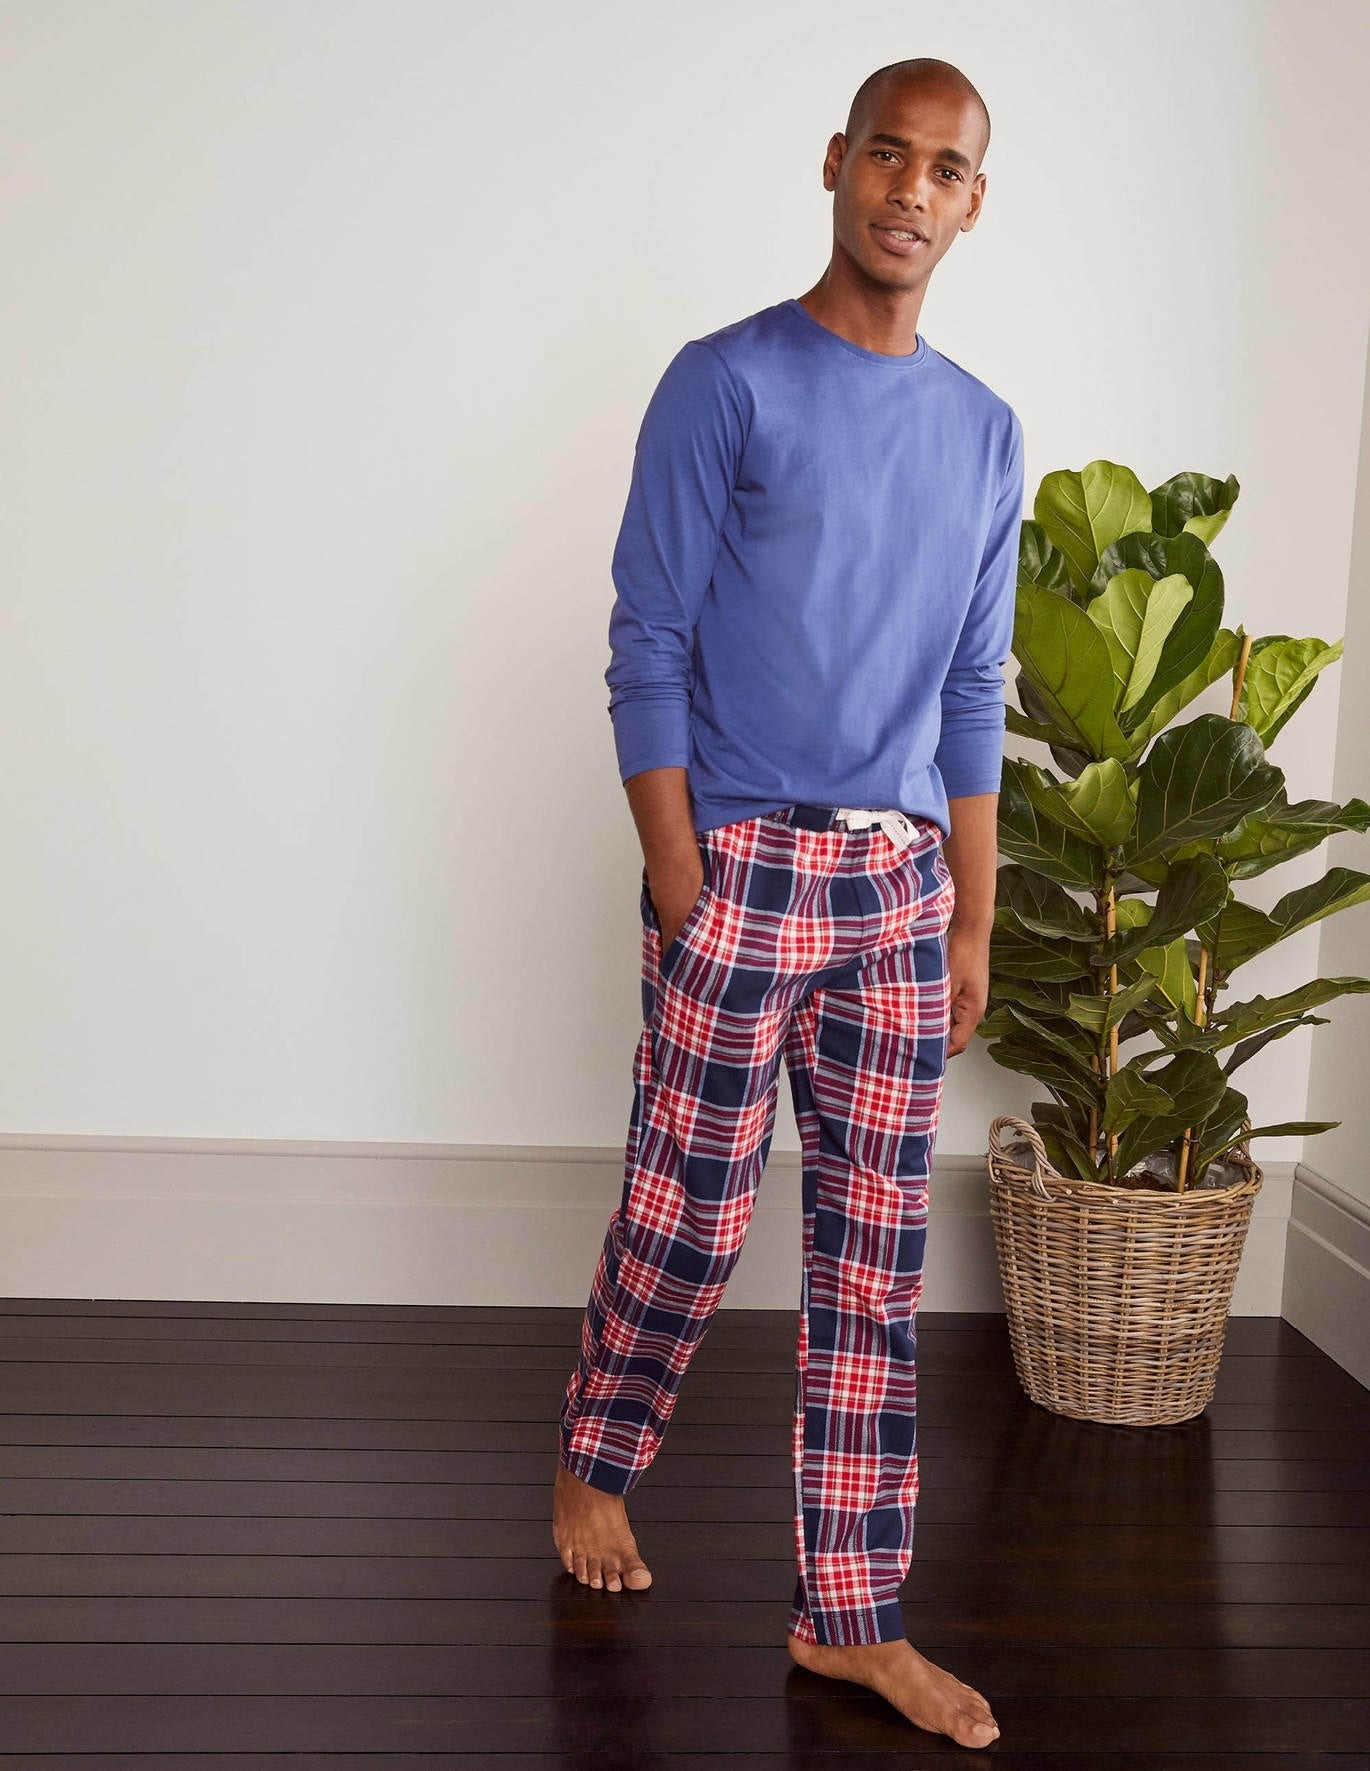 Model wearing the full-length pajama bottoms with an elastic waist in red and blue plaid